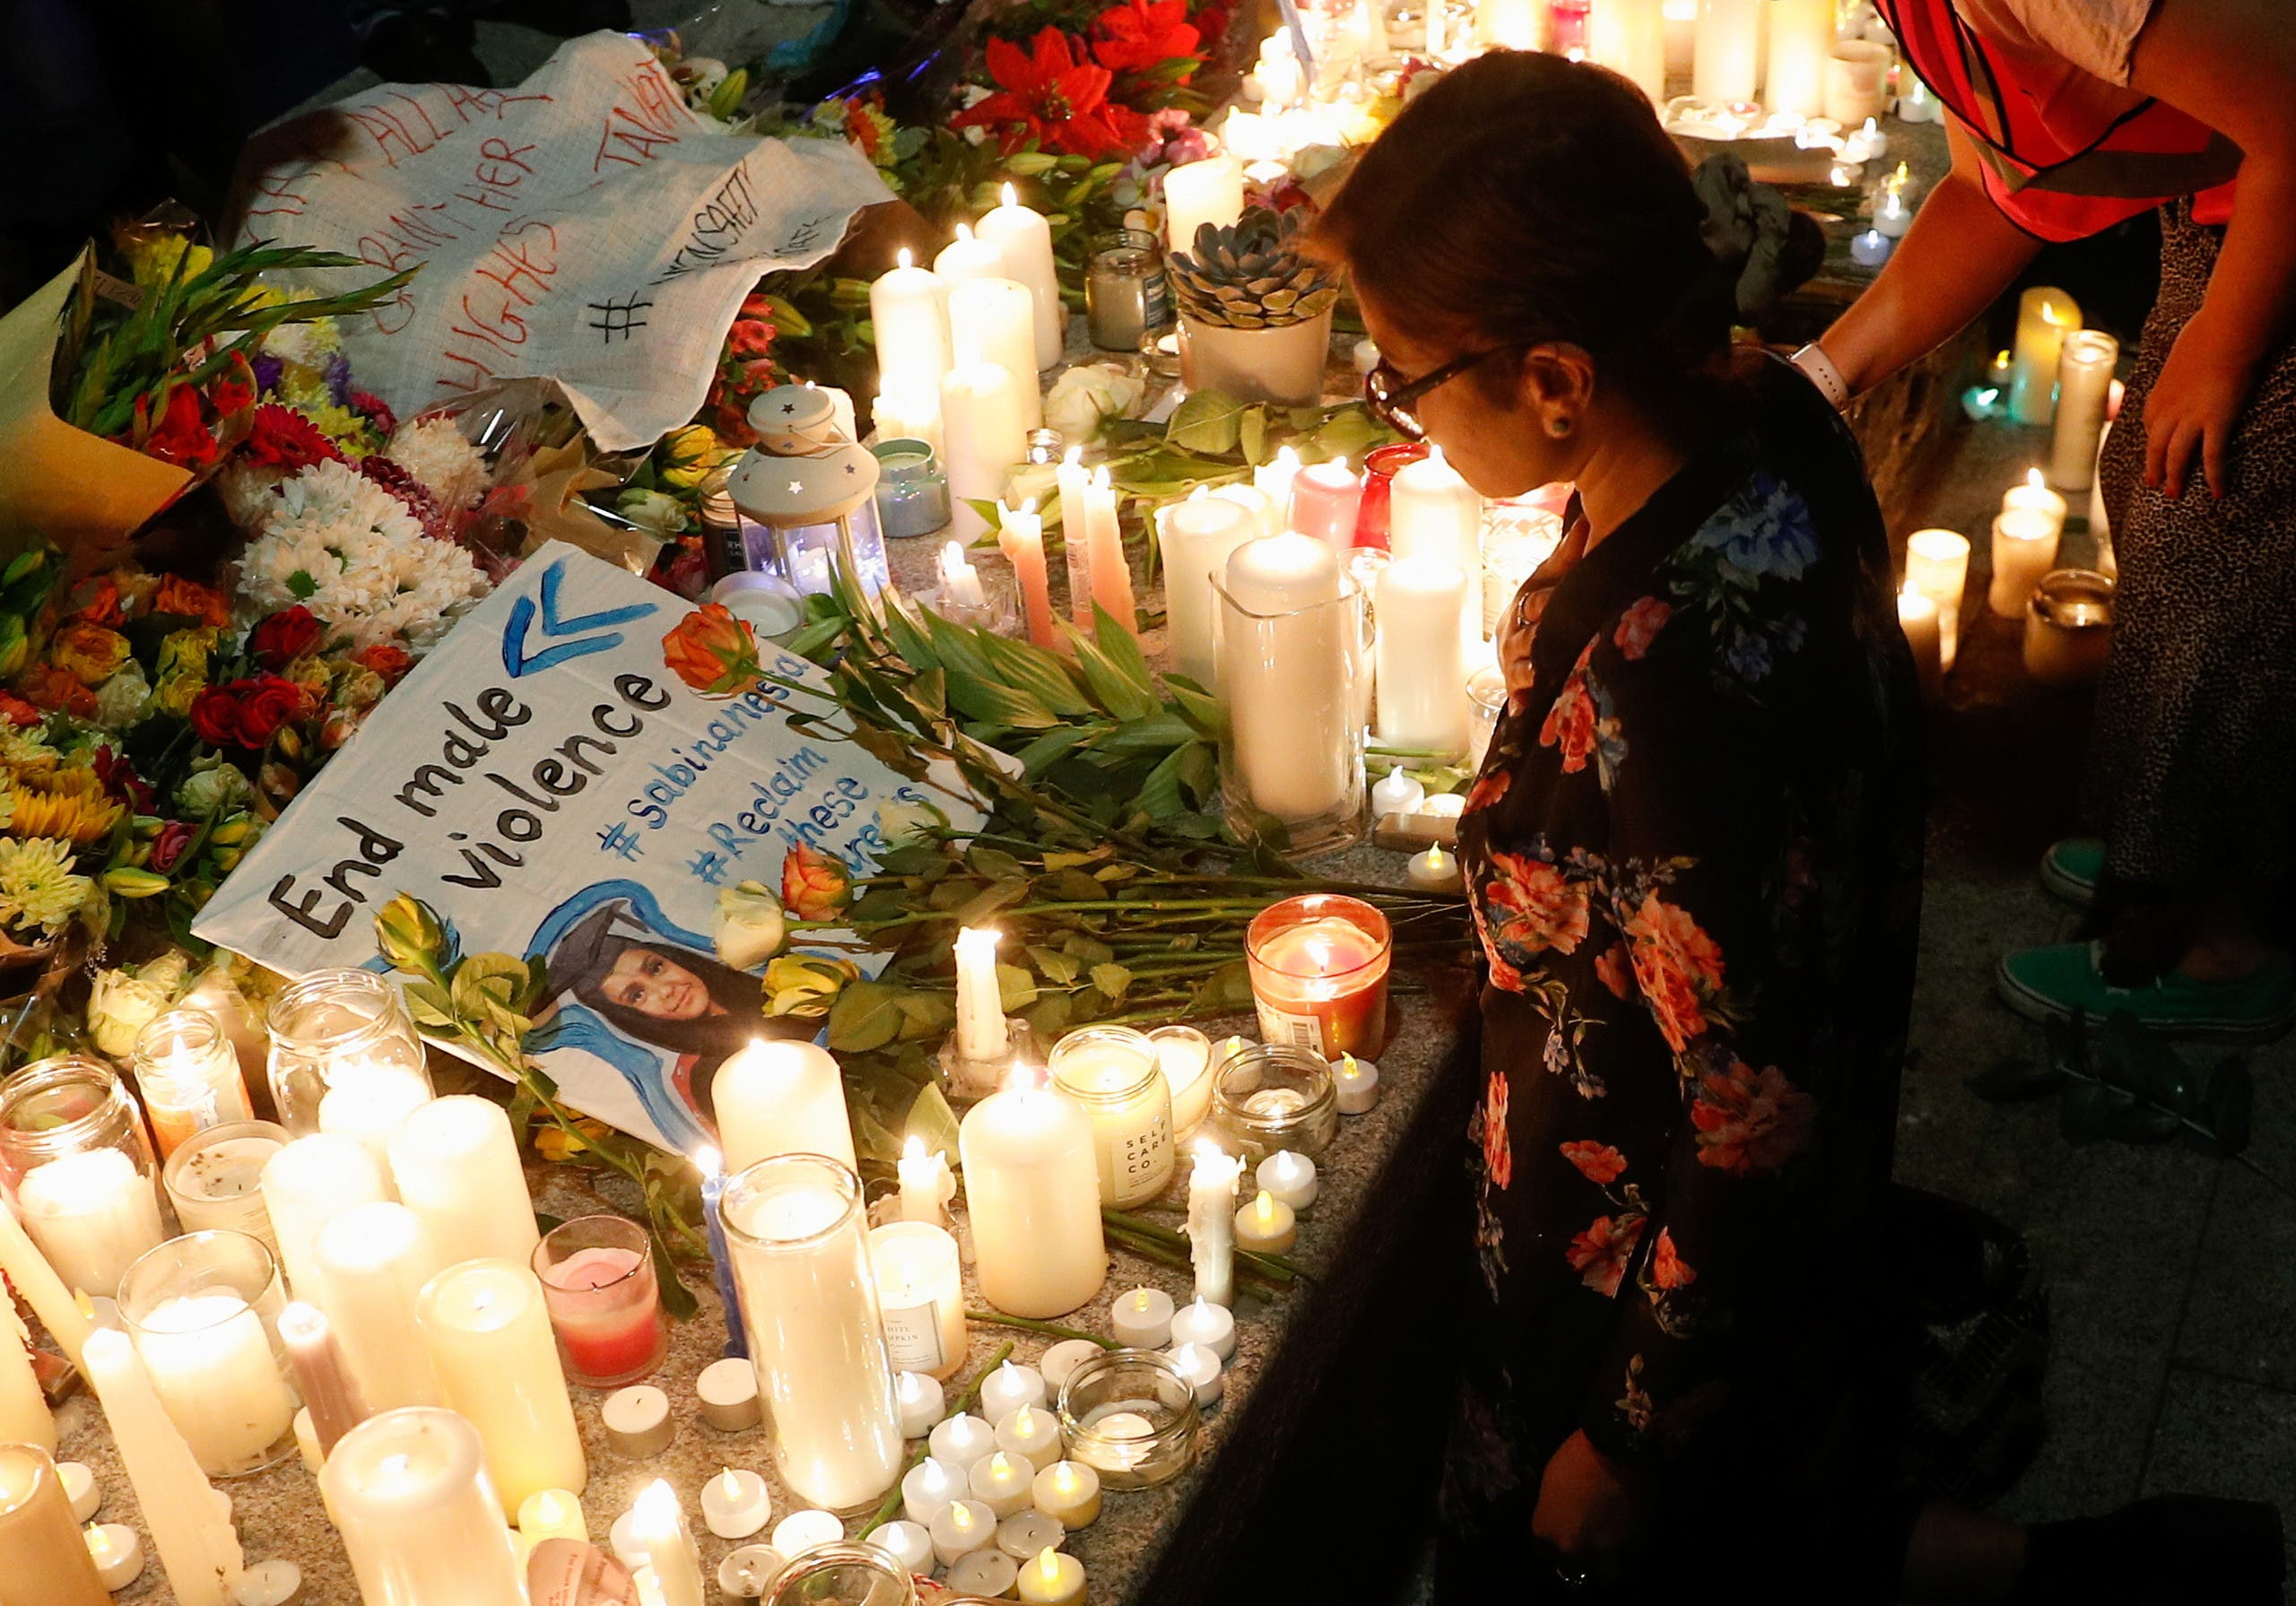 A placard is seen among flowers and candles during a vigil in memory of Sabina Nessa, a teacher who was murdered in Pegler Square, in London, Britain September 24, 2021. (Reuters)